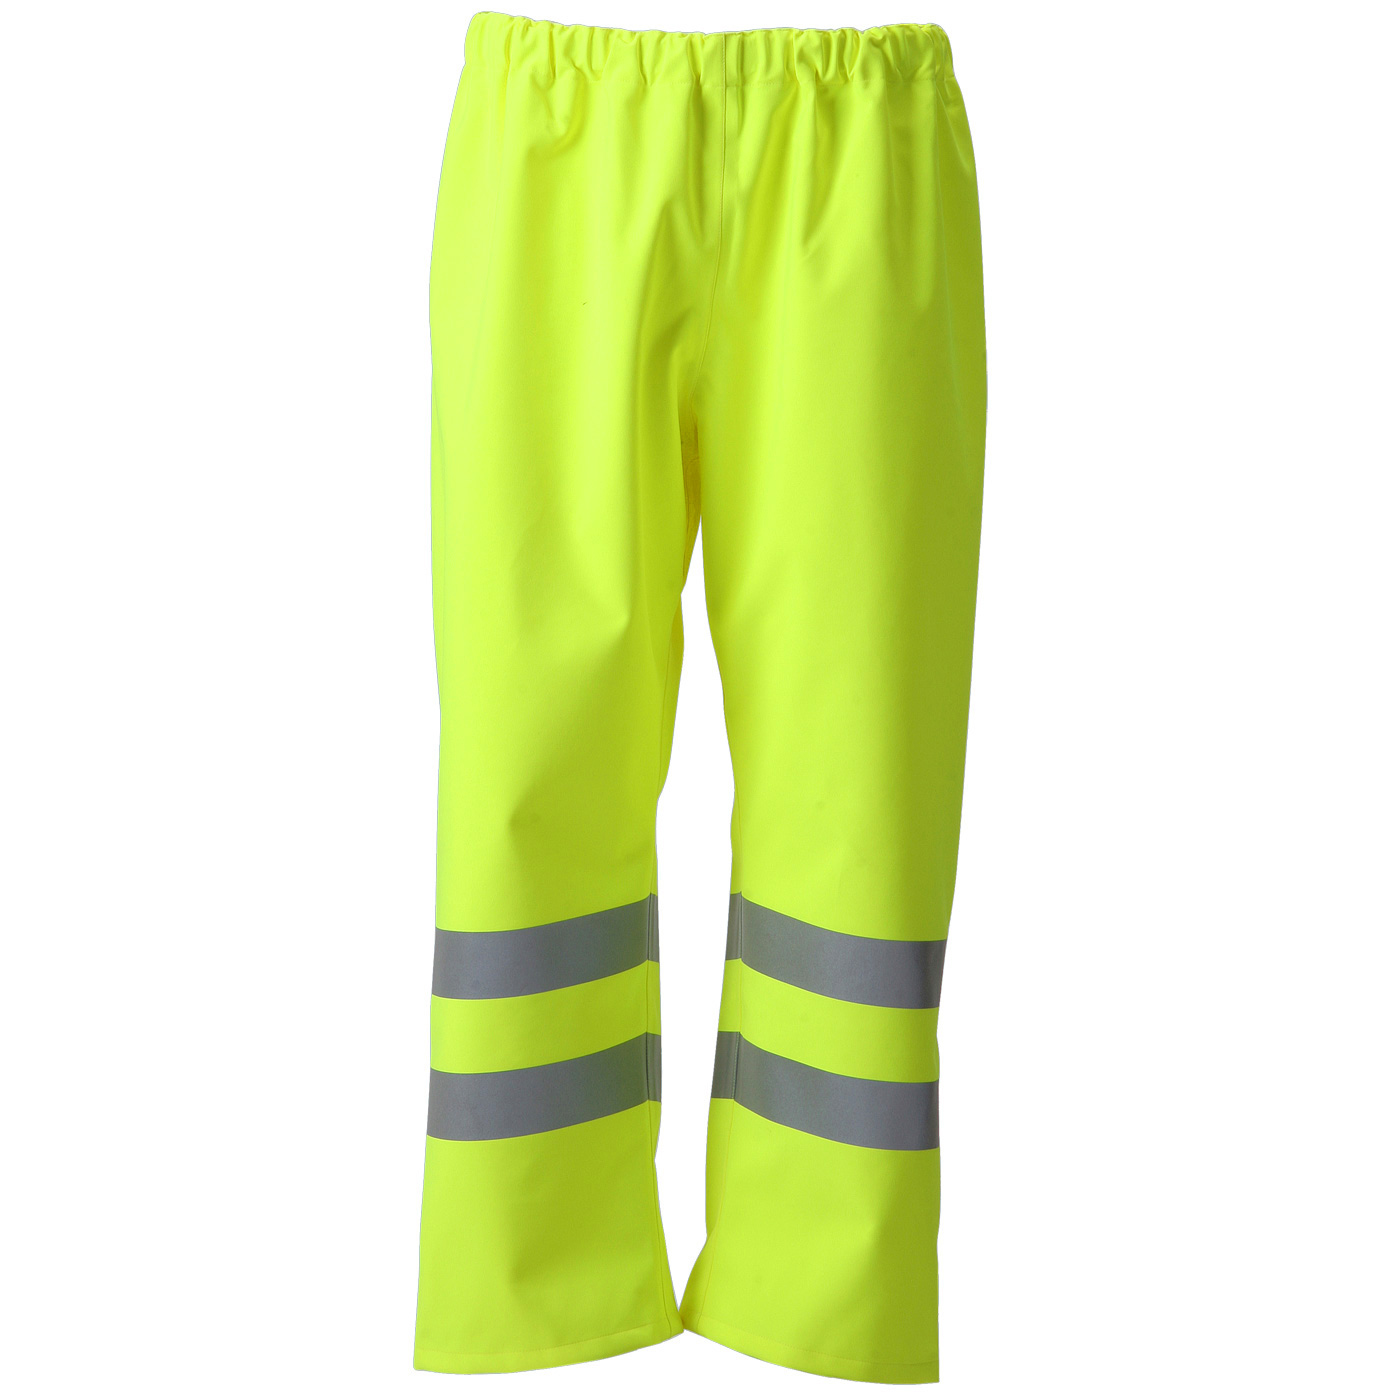 BSeen Gore-Tex Over Trousers Foul Weather L Saturn Yellow Ref GTHV160SYL Up to 3 Day Leadtime